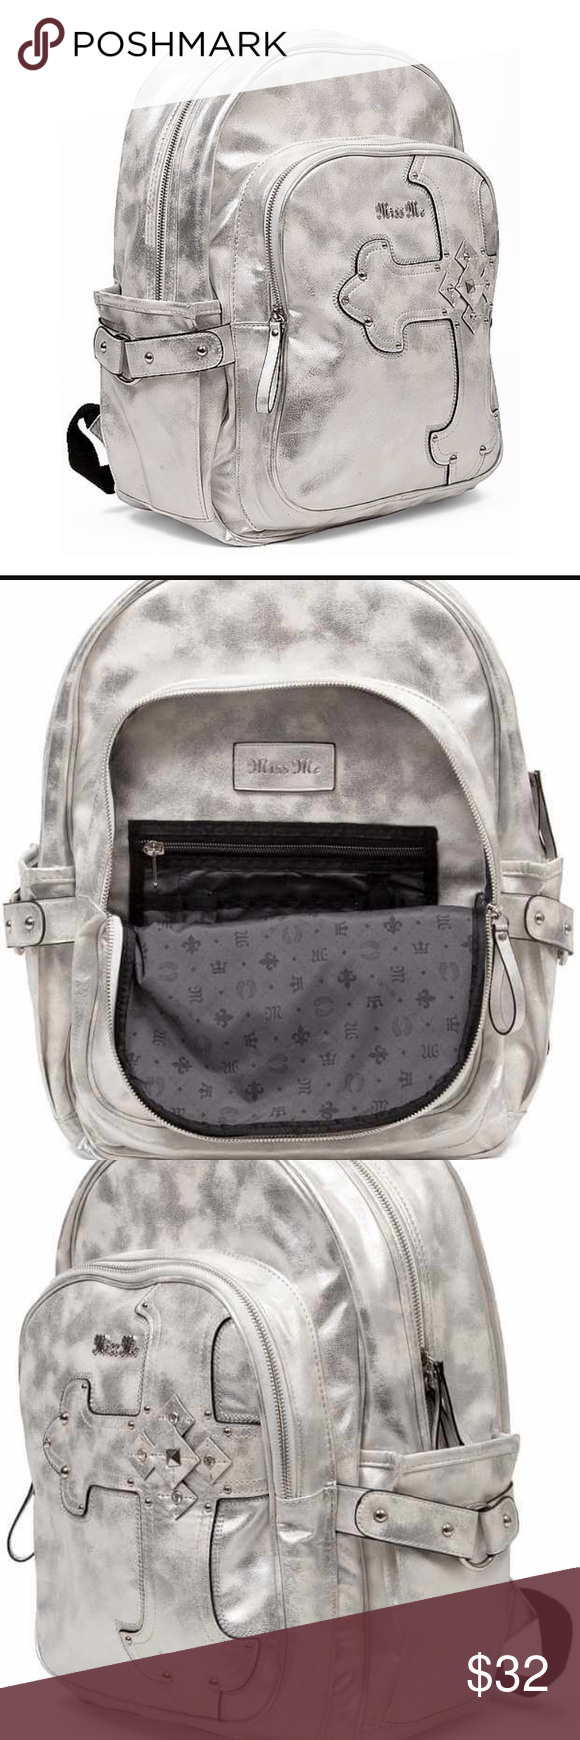 Miss me backpack pearlsilver Faux leather Miss me backpack pearlsilver faux leather  backpack compartments padded adjustable Straps stud and rhinestone ... 5b5ab557c6